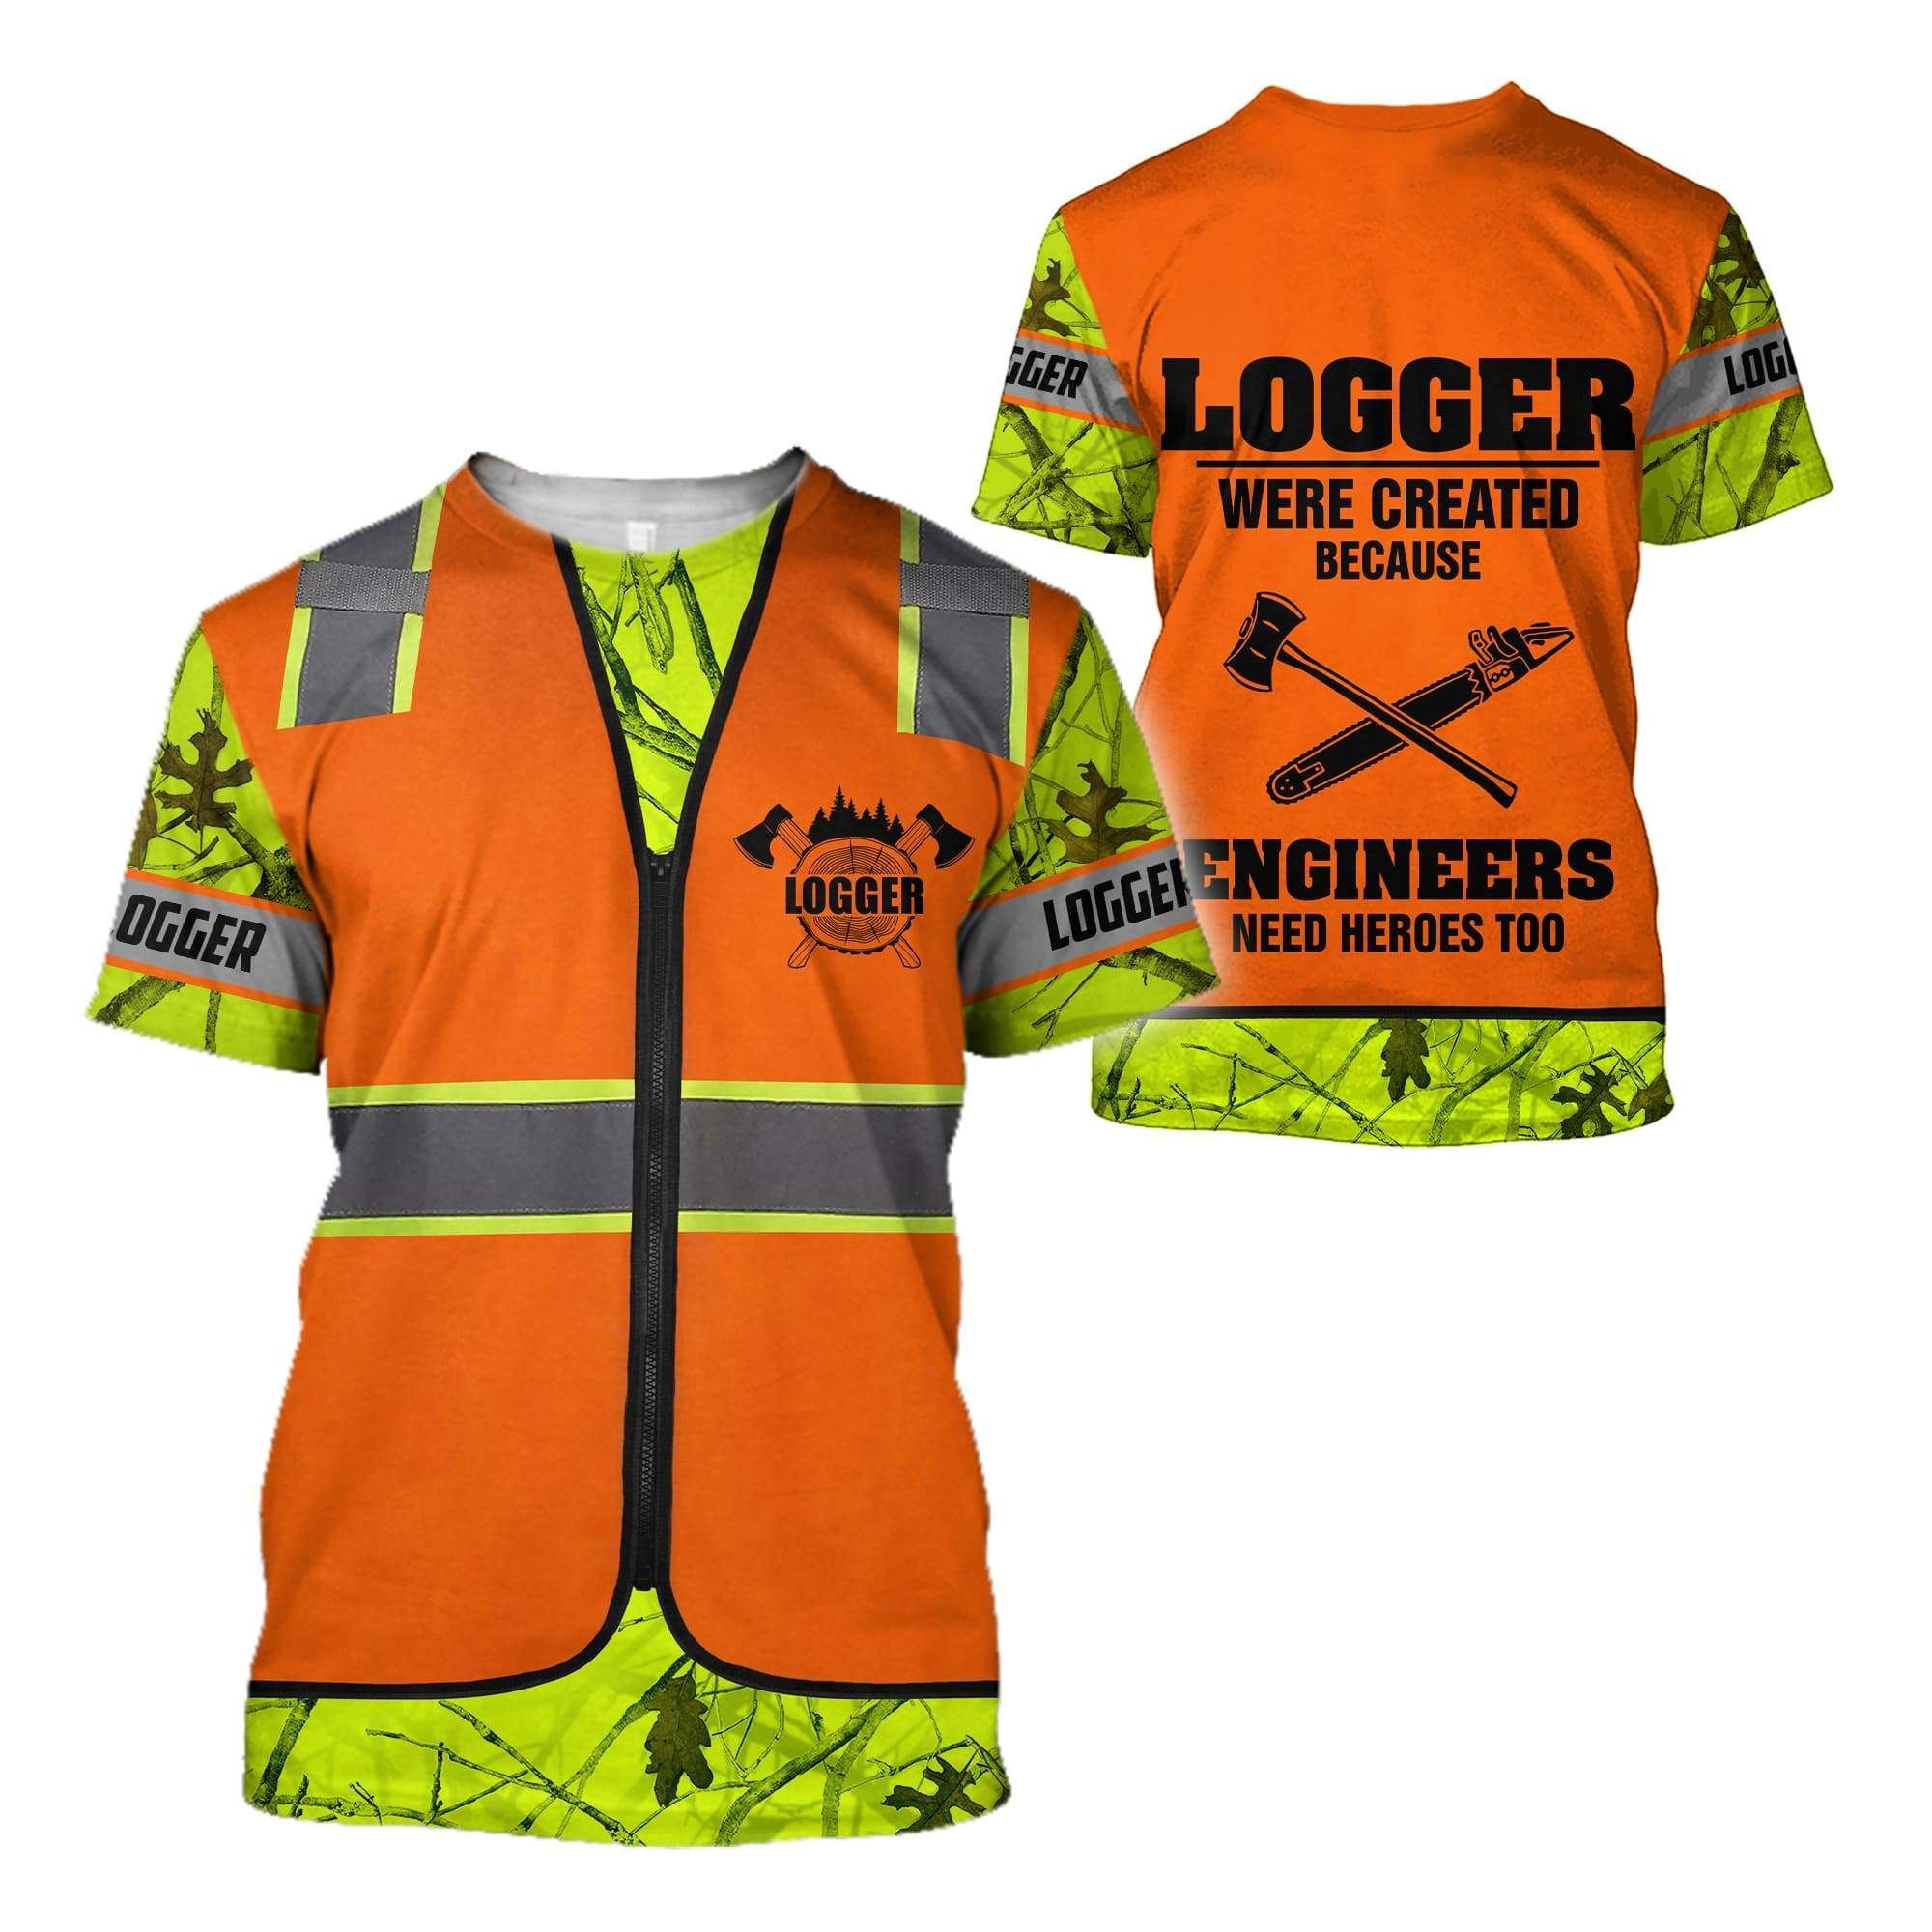 Logger - Were Creat Because Engineers Need Heroes Too - T-Shirt / XXL